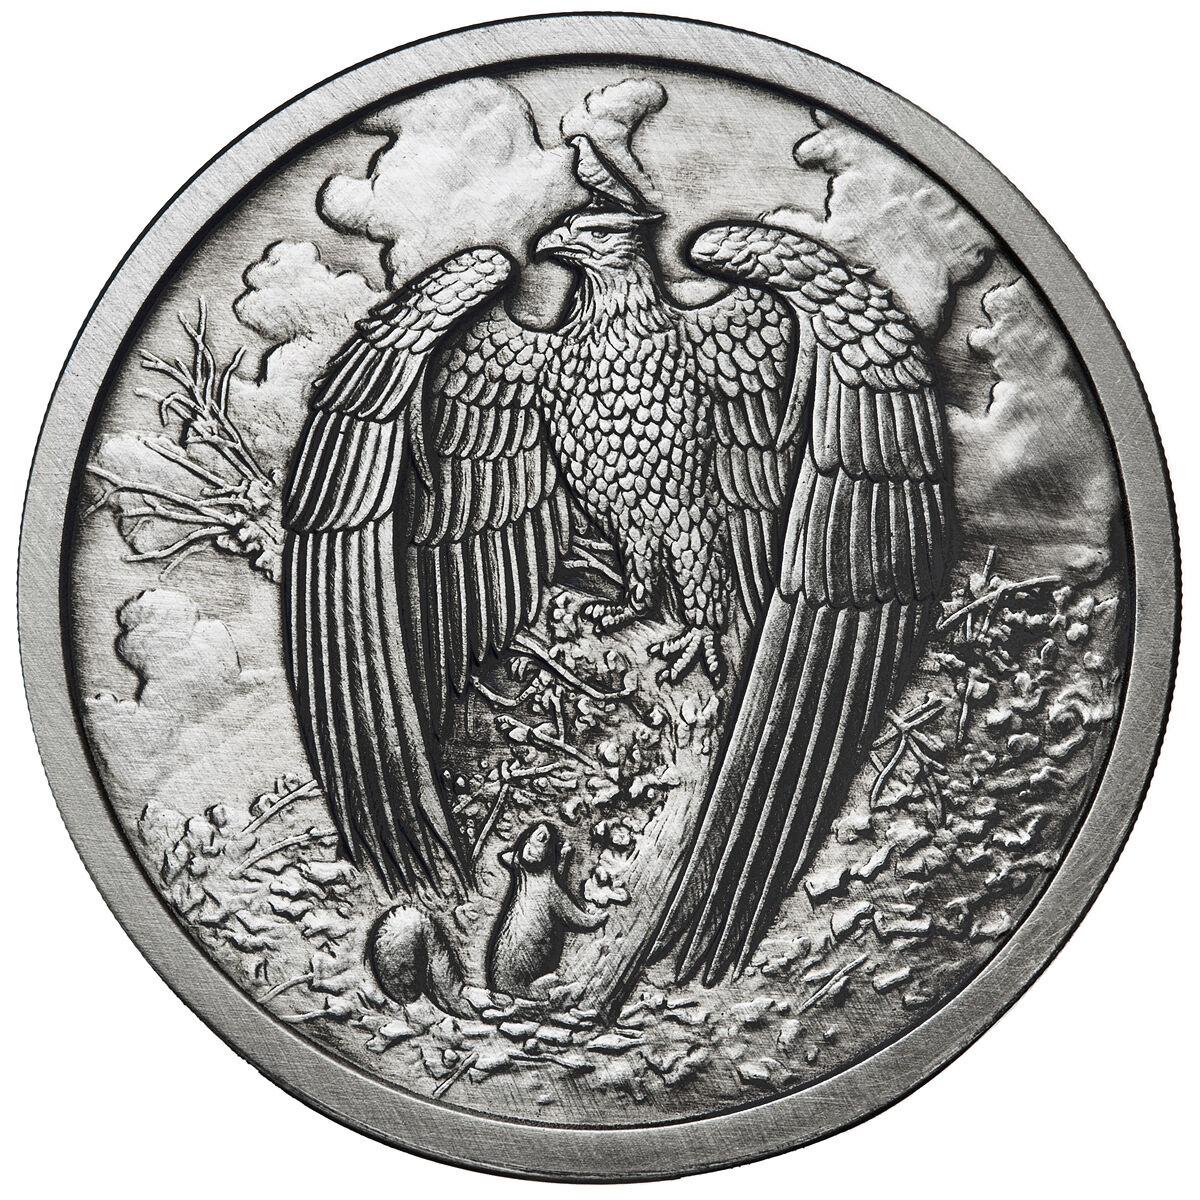 1 OZ GREAT EAGLE ANTIQUE .999 SILVER W/ COA NORDIC CREATURES #5 VIKING VALKYRIE